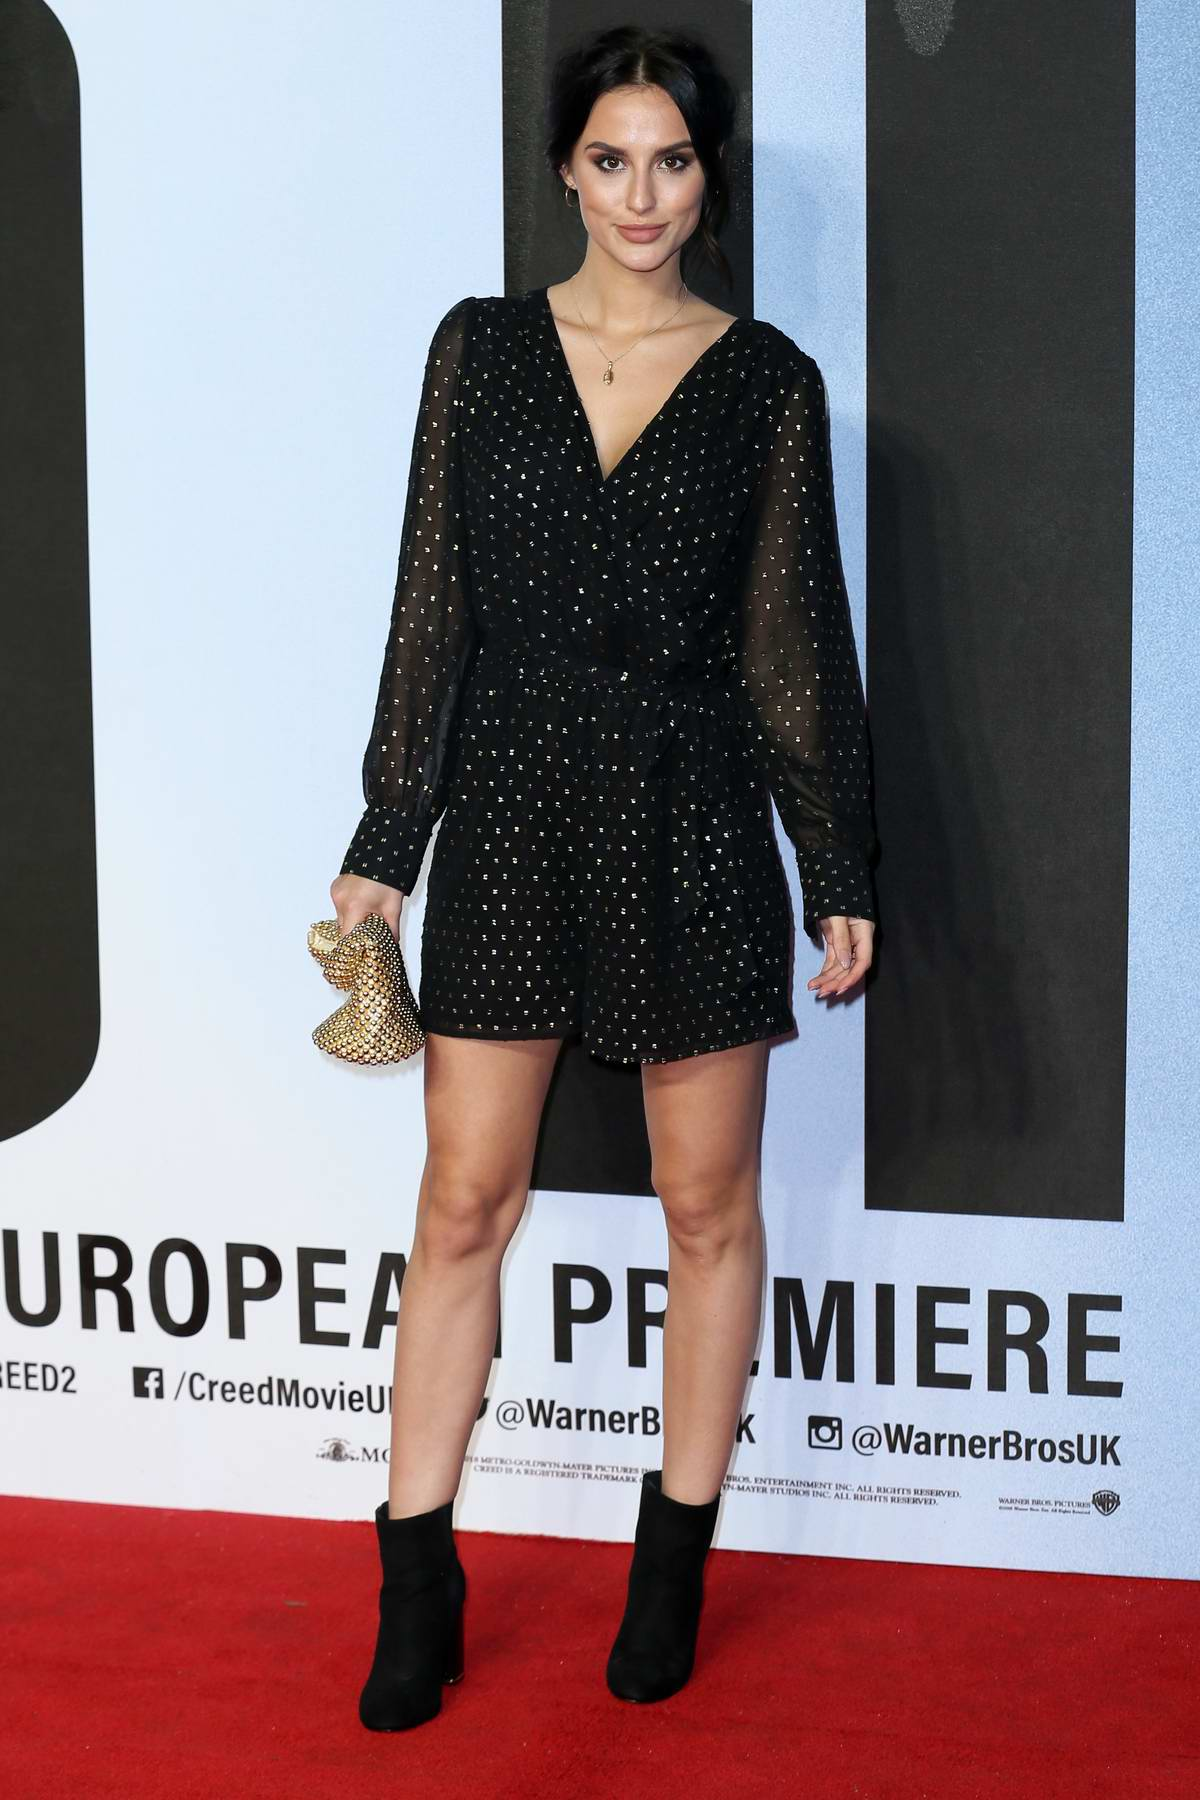 Lucy Watson attends the European Premiere of 'Creed II' at the BFI IMAX in London, UK